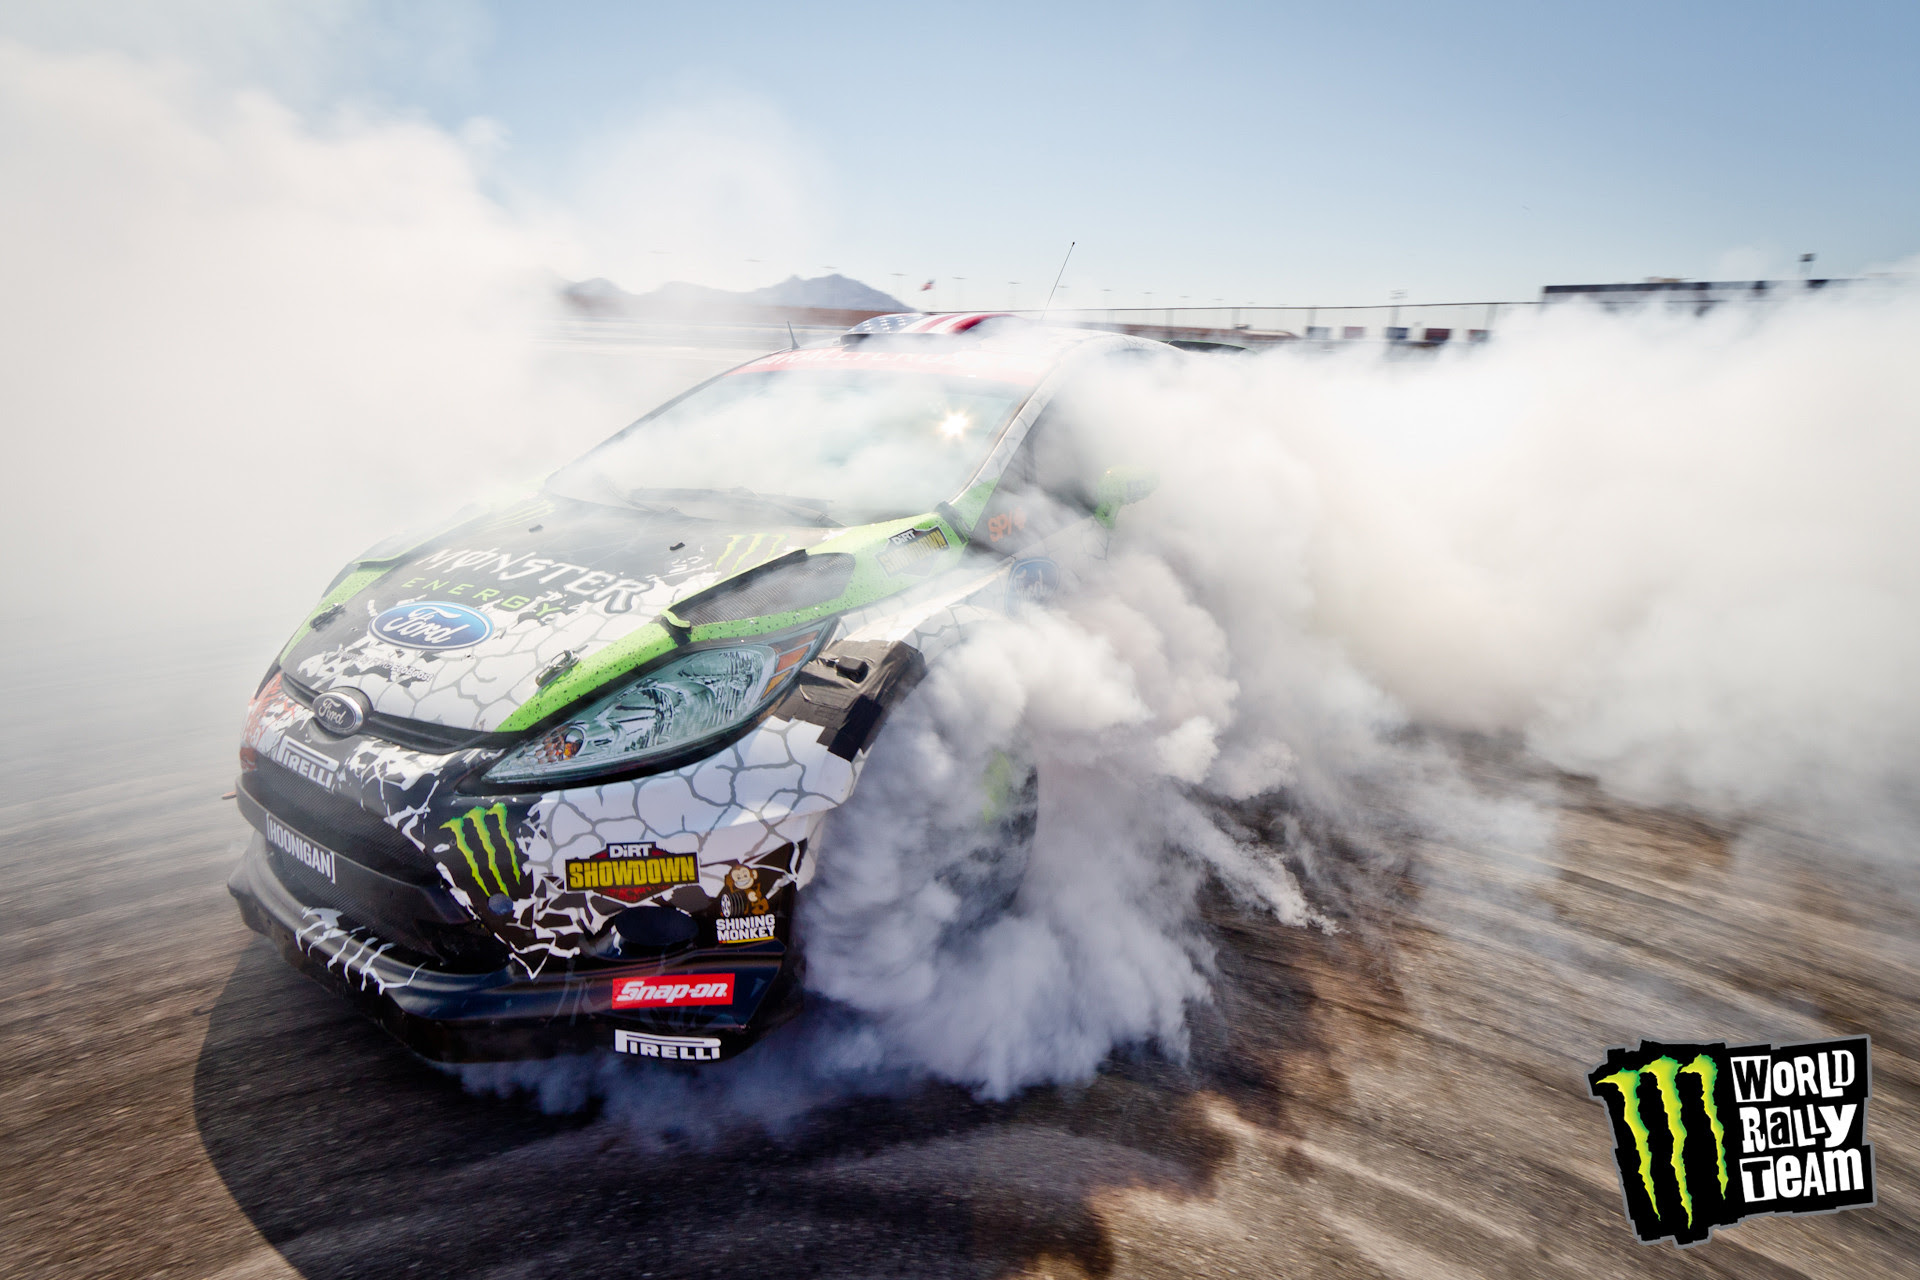 Ken Block Drifting In His Ford Fiesta For His Las Vegas Tire Test